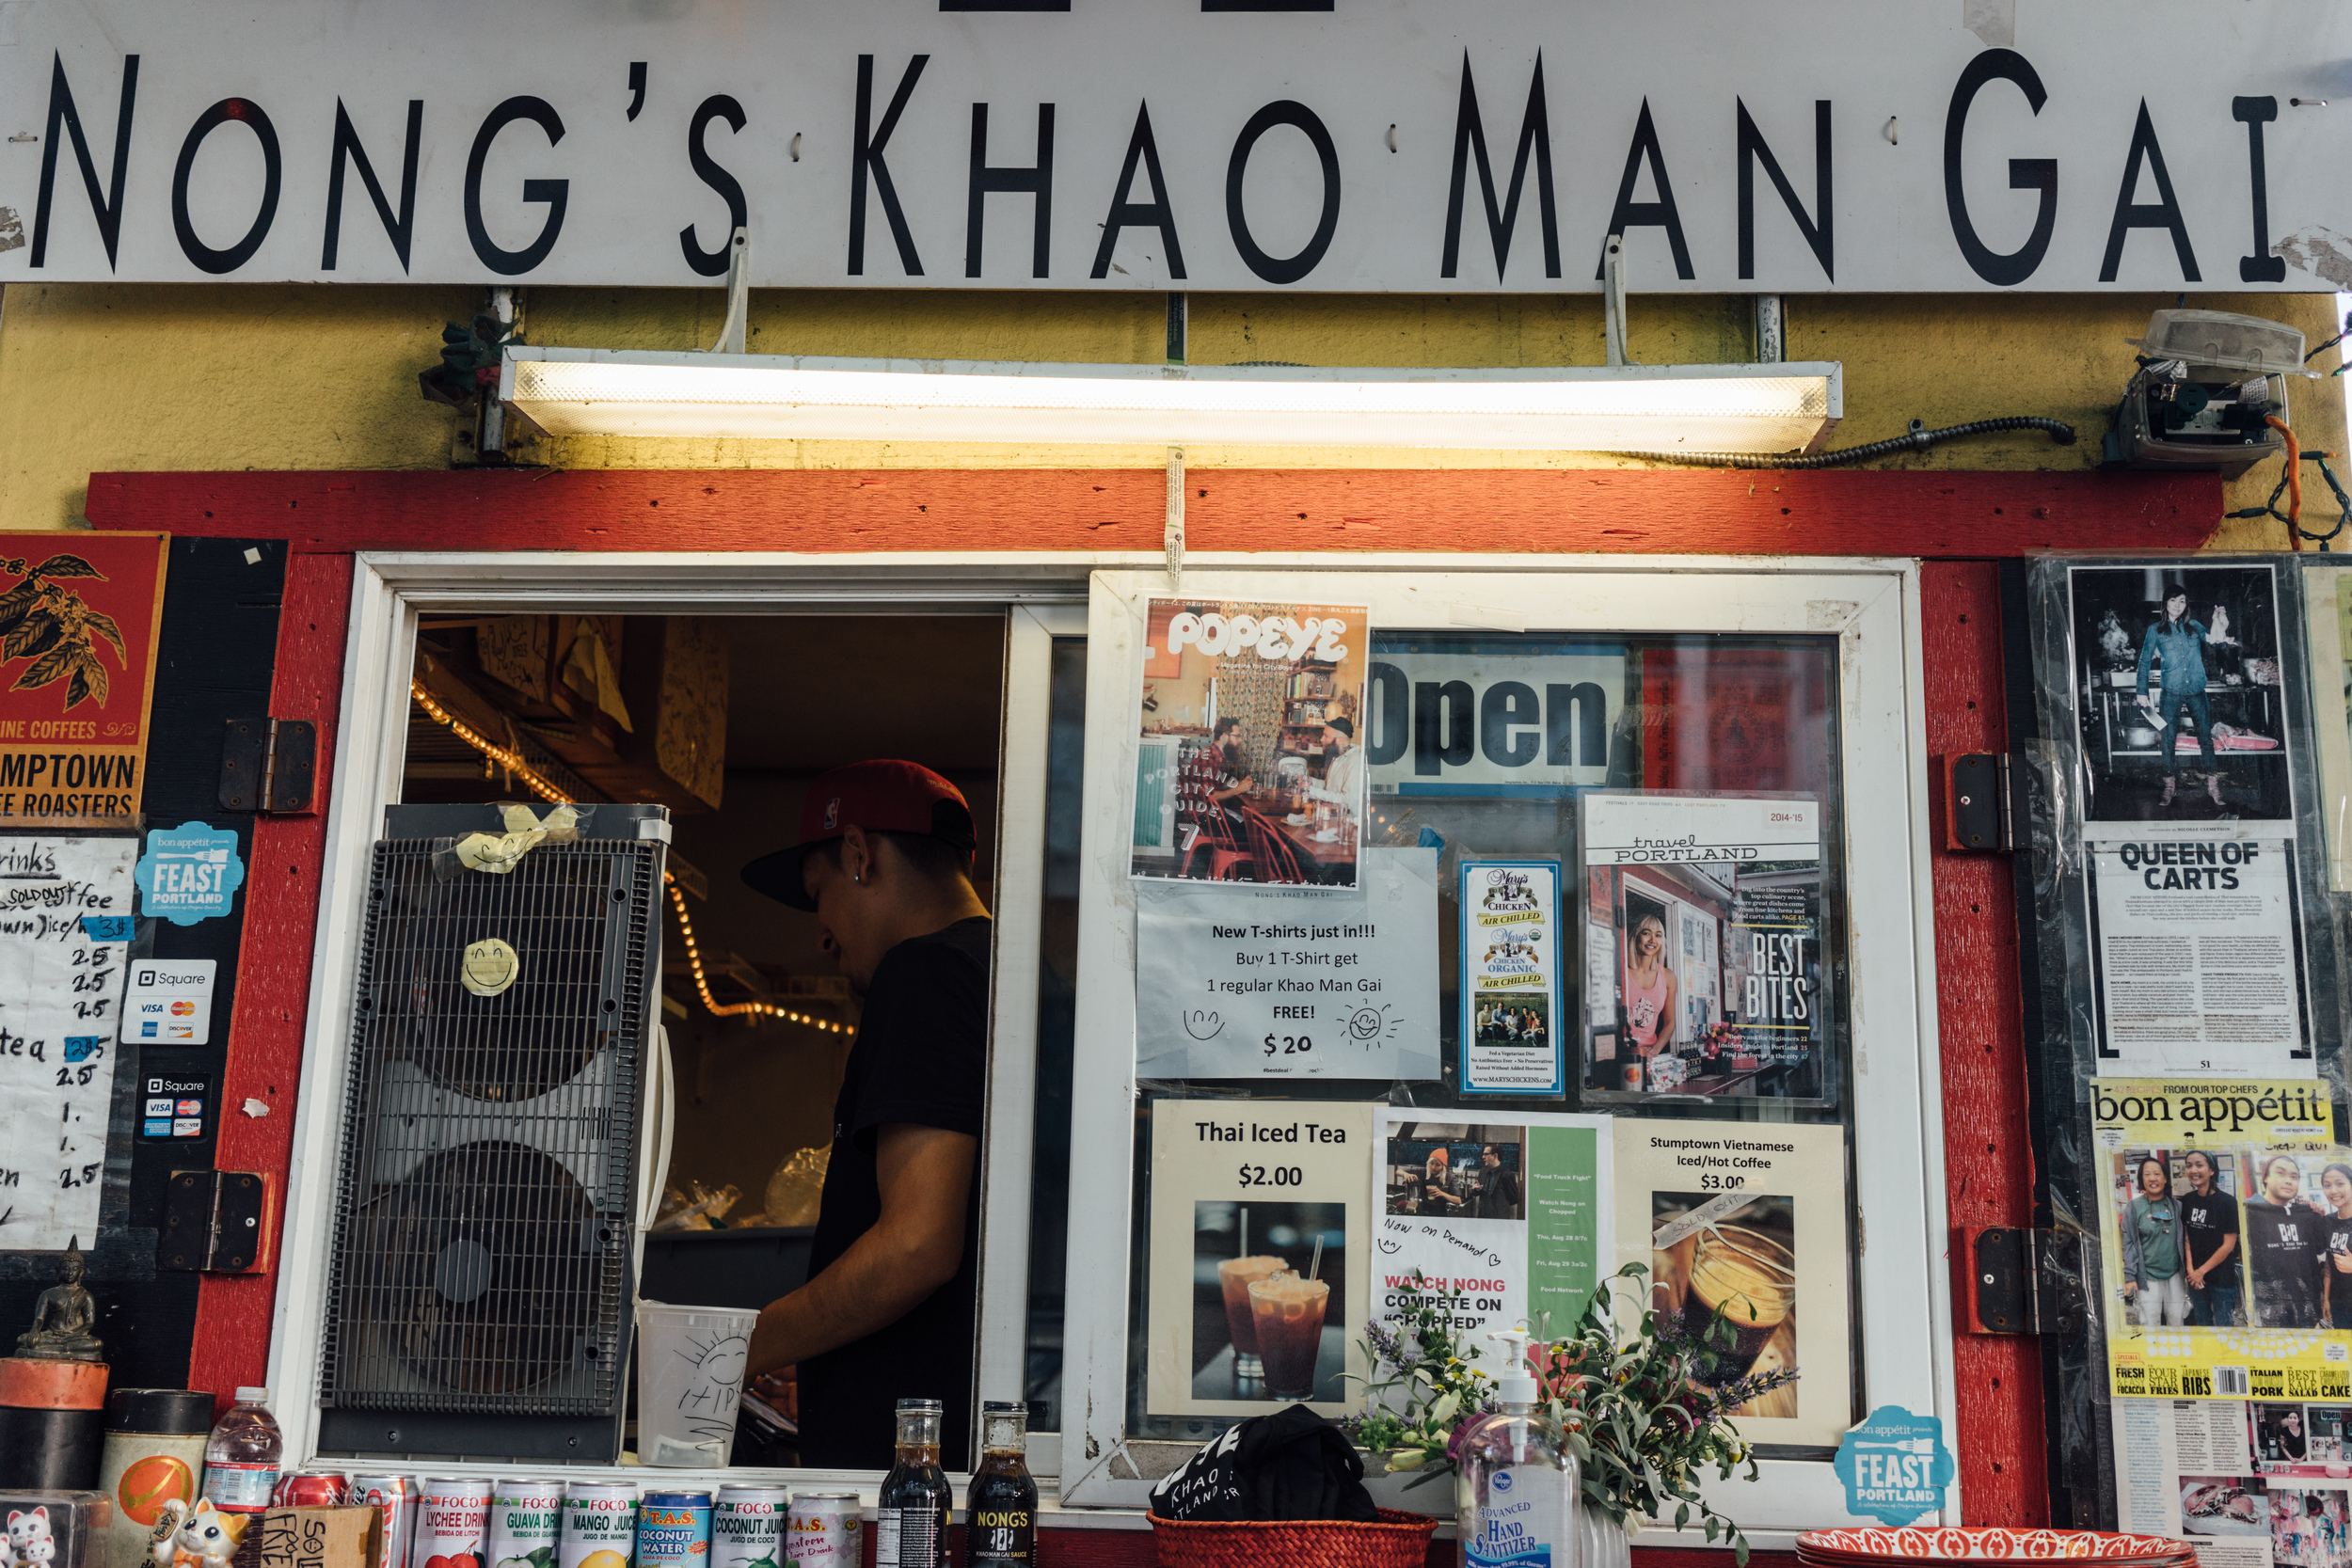 The famous  Nong's Kao Mun Gai  food truck.  Unfortunately they were closed for the day but fortunately that they have a sit-down restaurant to the south of the city.